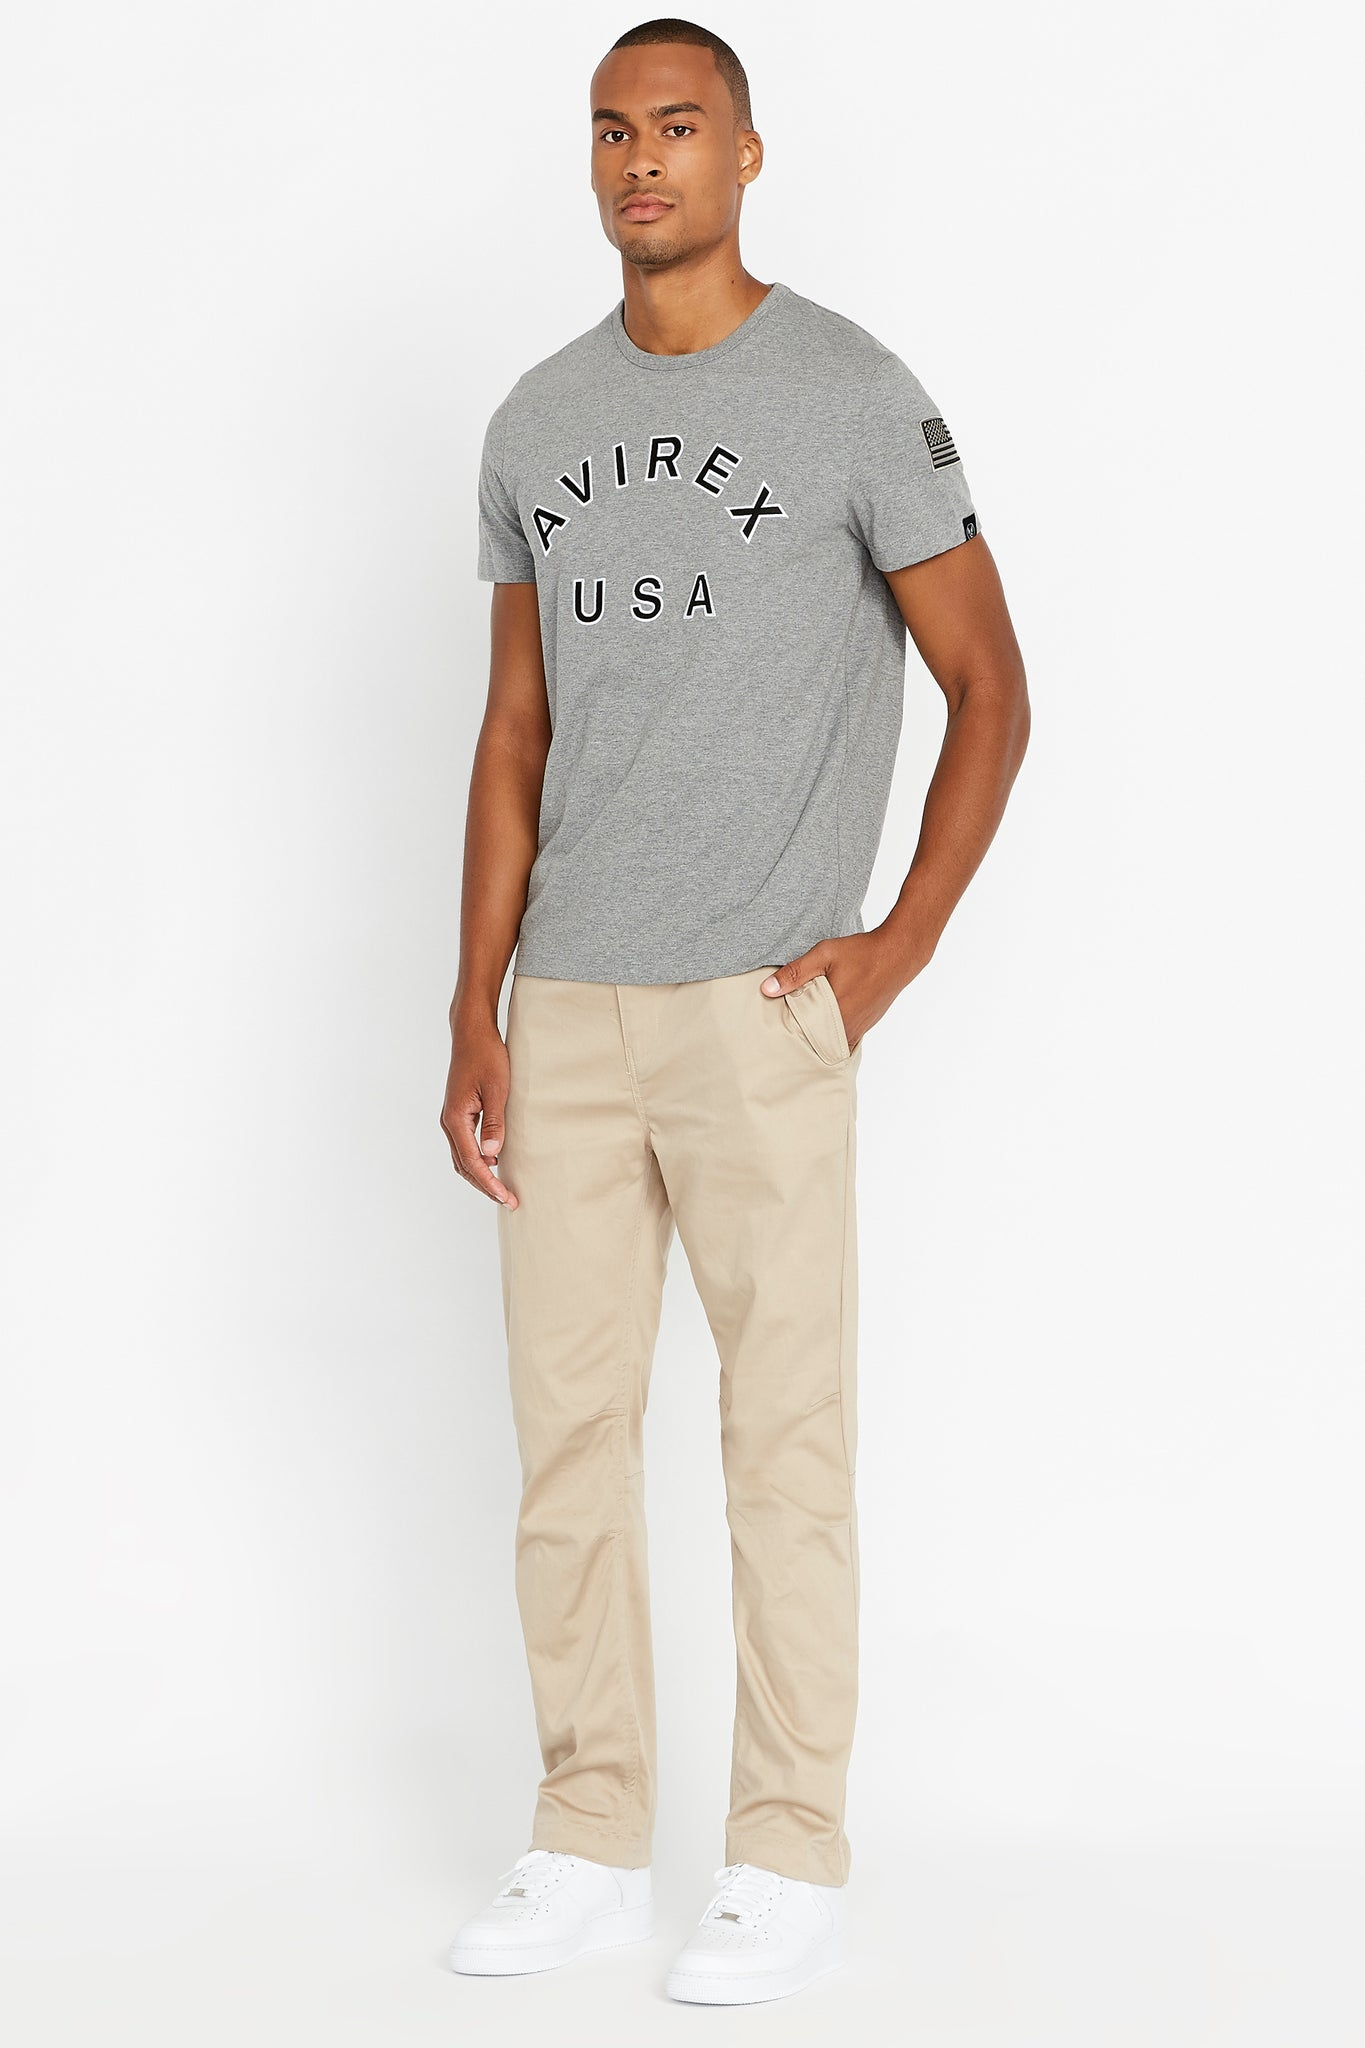 Full view of men wearing a light grey short sleeve crew T-shirt with bold logo across the front saying Avirex USA and a patch on left sleeve and light beige pants